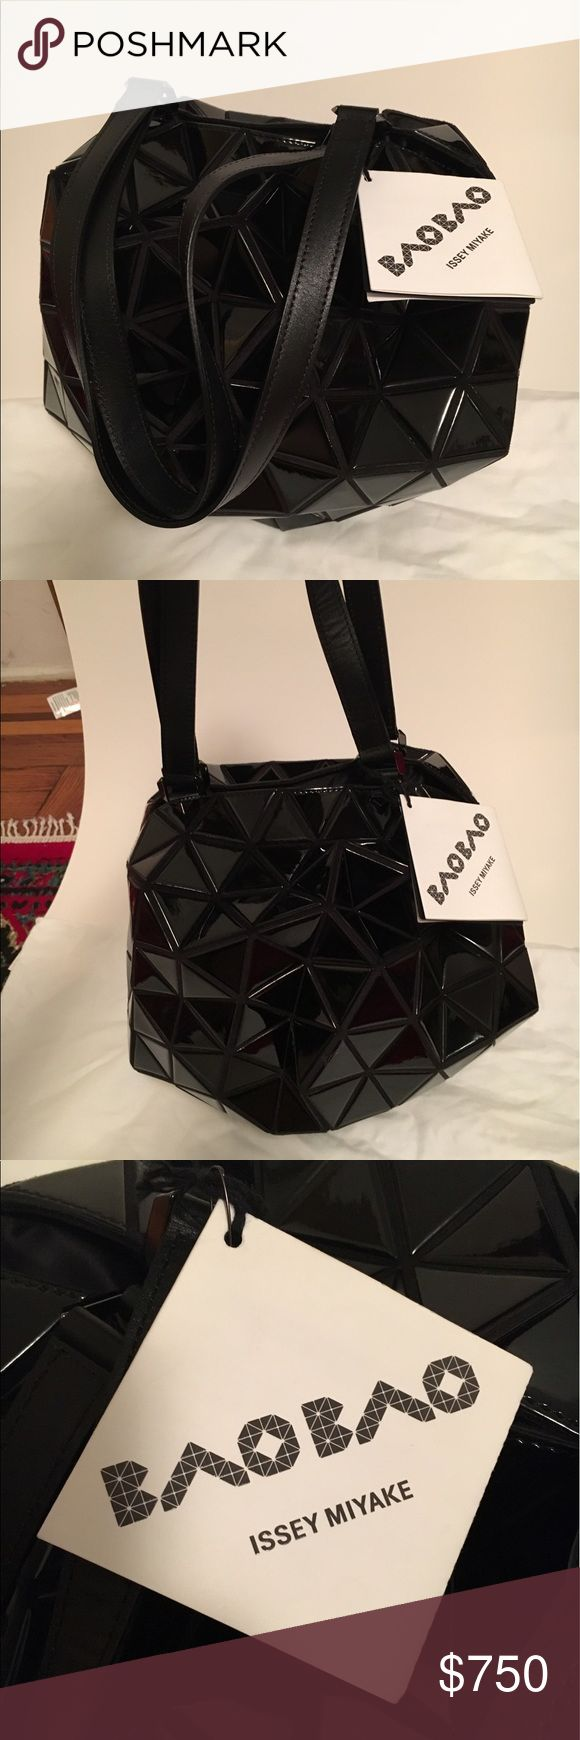 """Bao Bao Issey Miyake """"Planet"""" bag This is a brand new with tags Bao Bao Issey Miyake """"Planet"""" bag and its accompanying duster bag. It is made in Japan and retails for $1,220 directly from the designer.  Measurements: Height 11.8in Width 11.8in Depth 11.8in Issey Miyake Bags Shoulder Bags"""